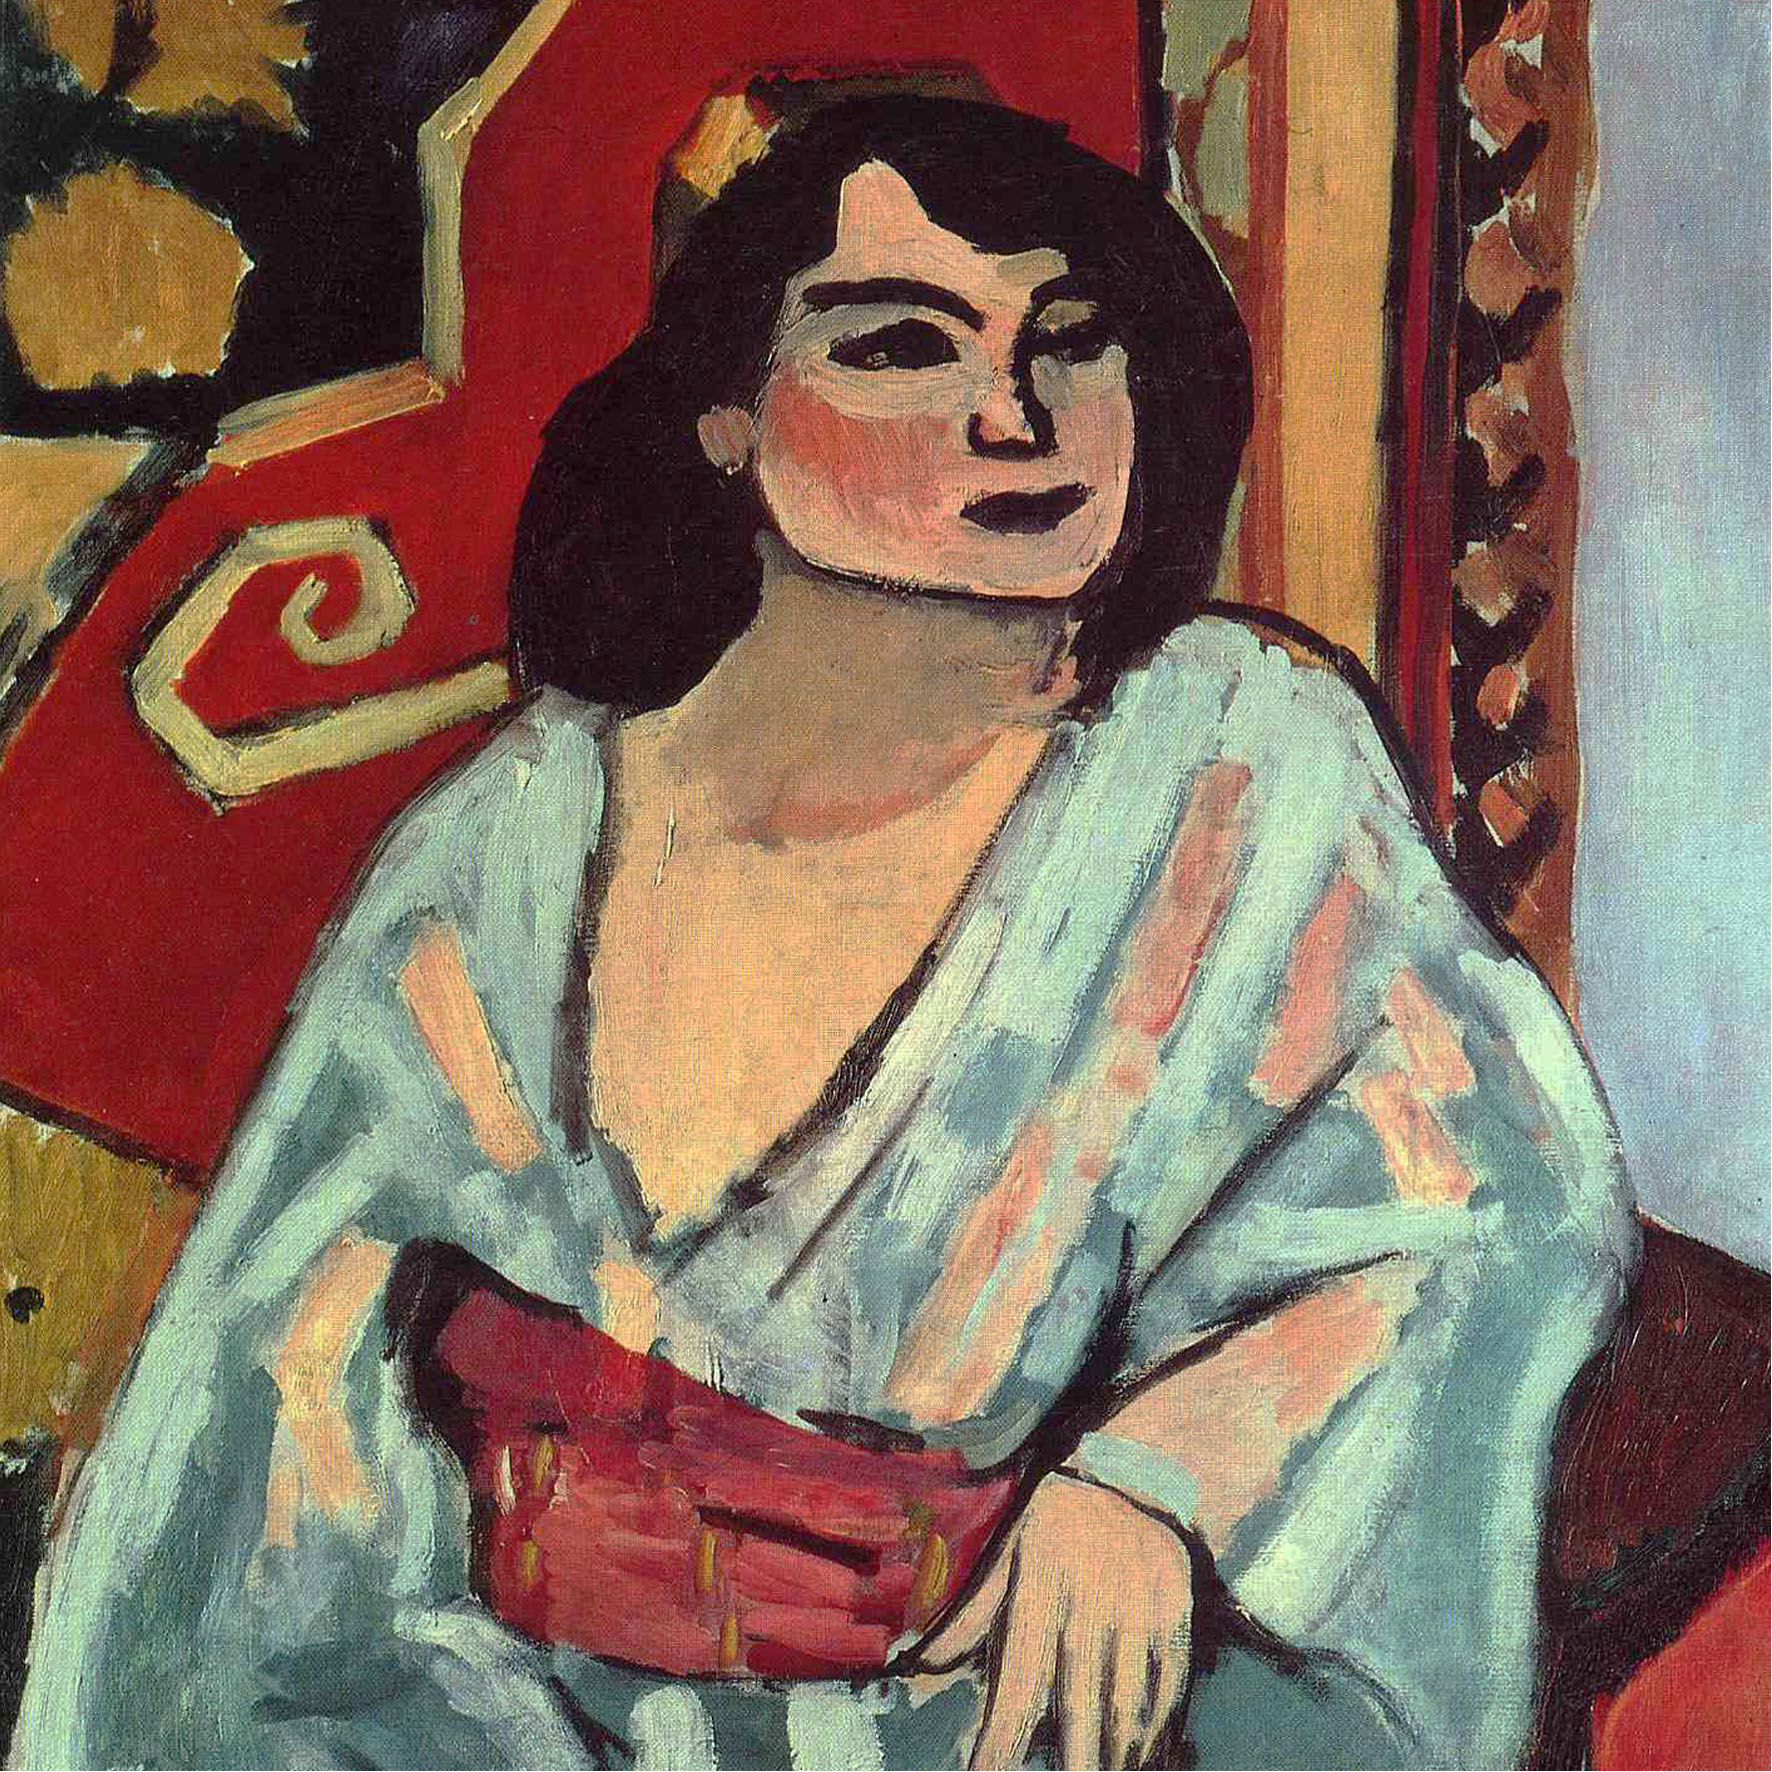 MATISSE AND HIS TIME